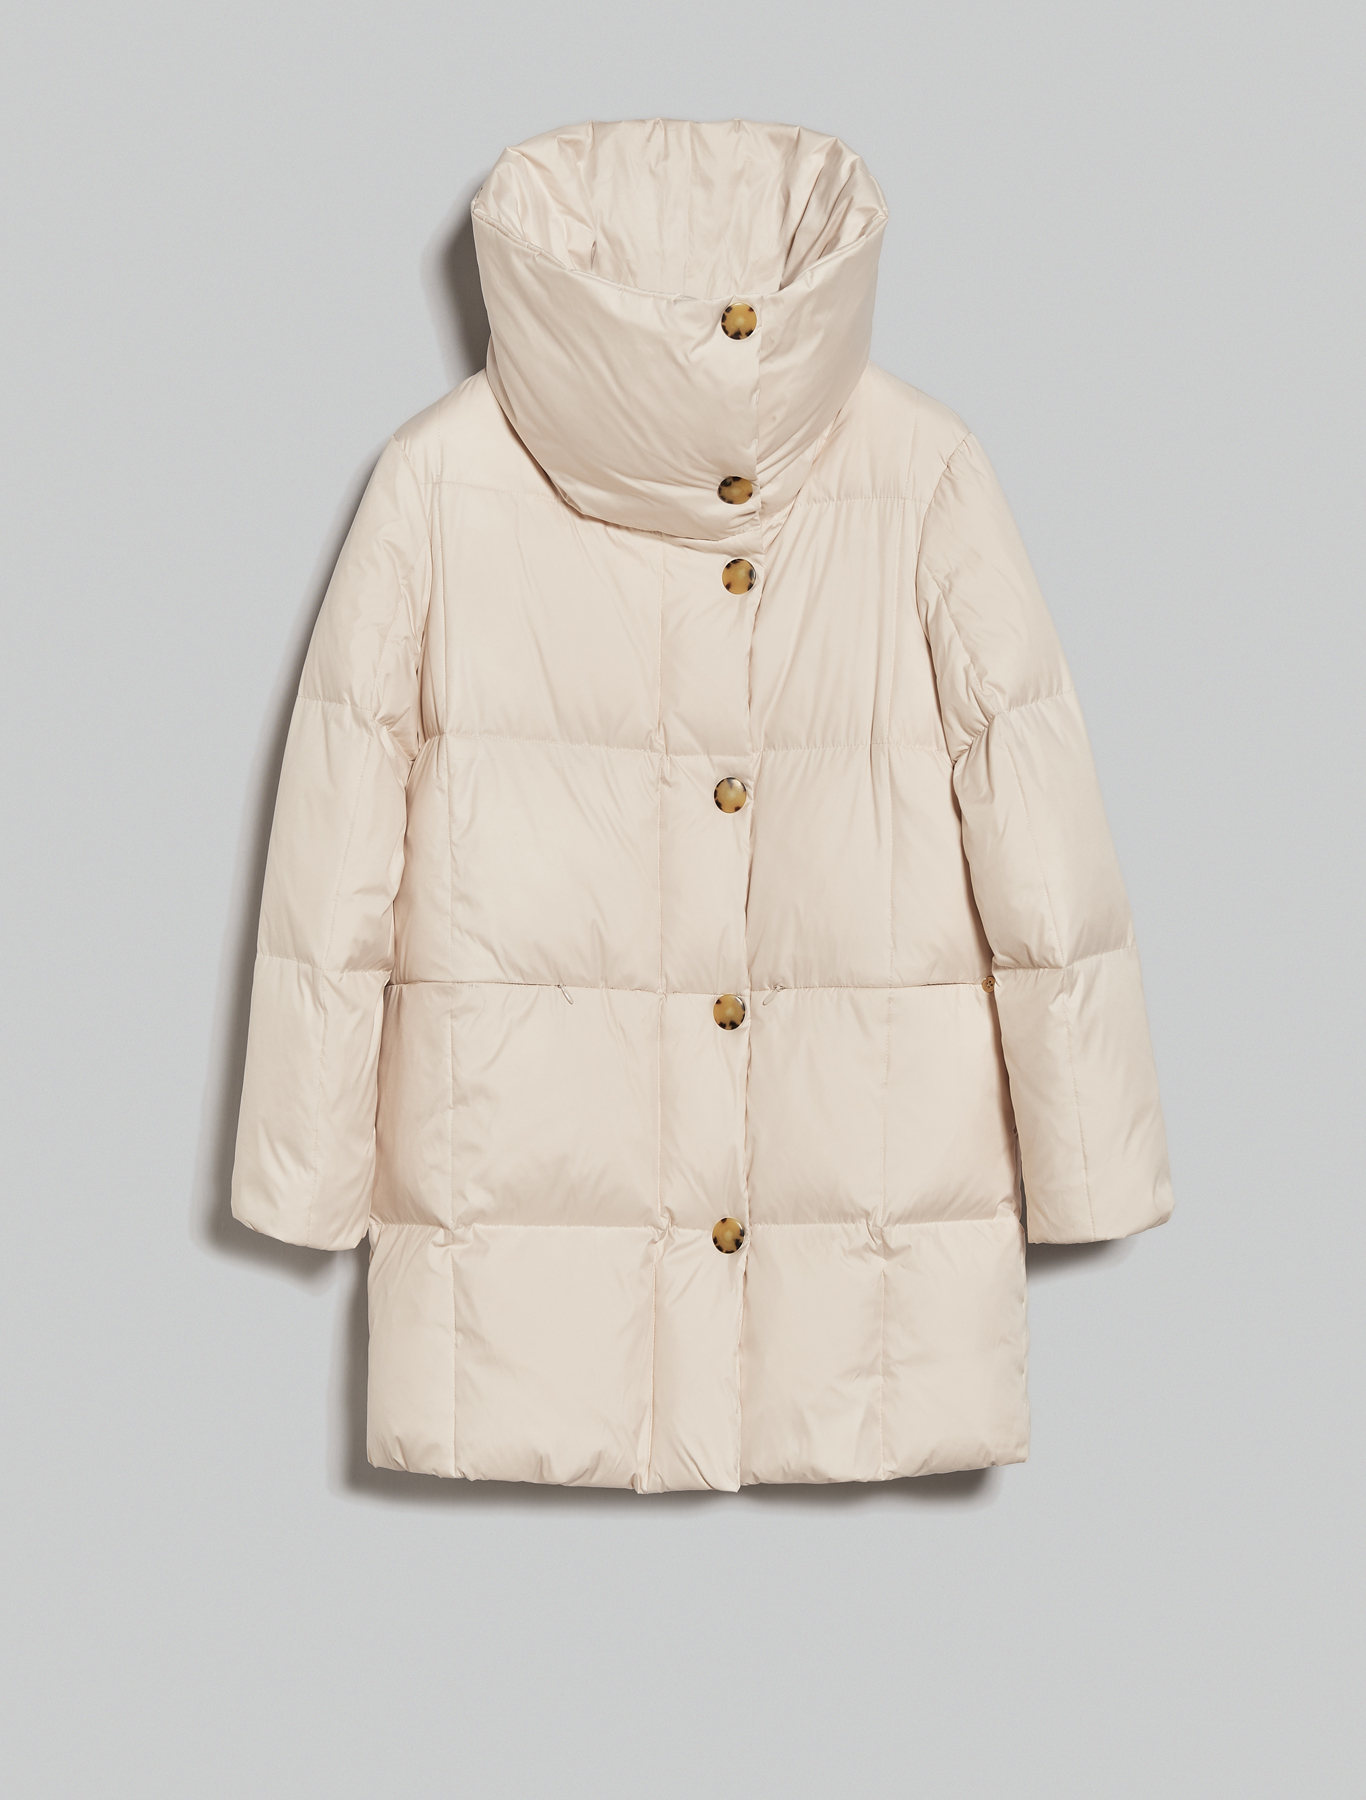 Down jacket with maxi collar - ivory - pennyblack